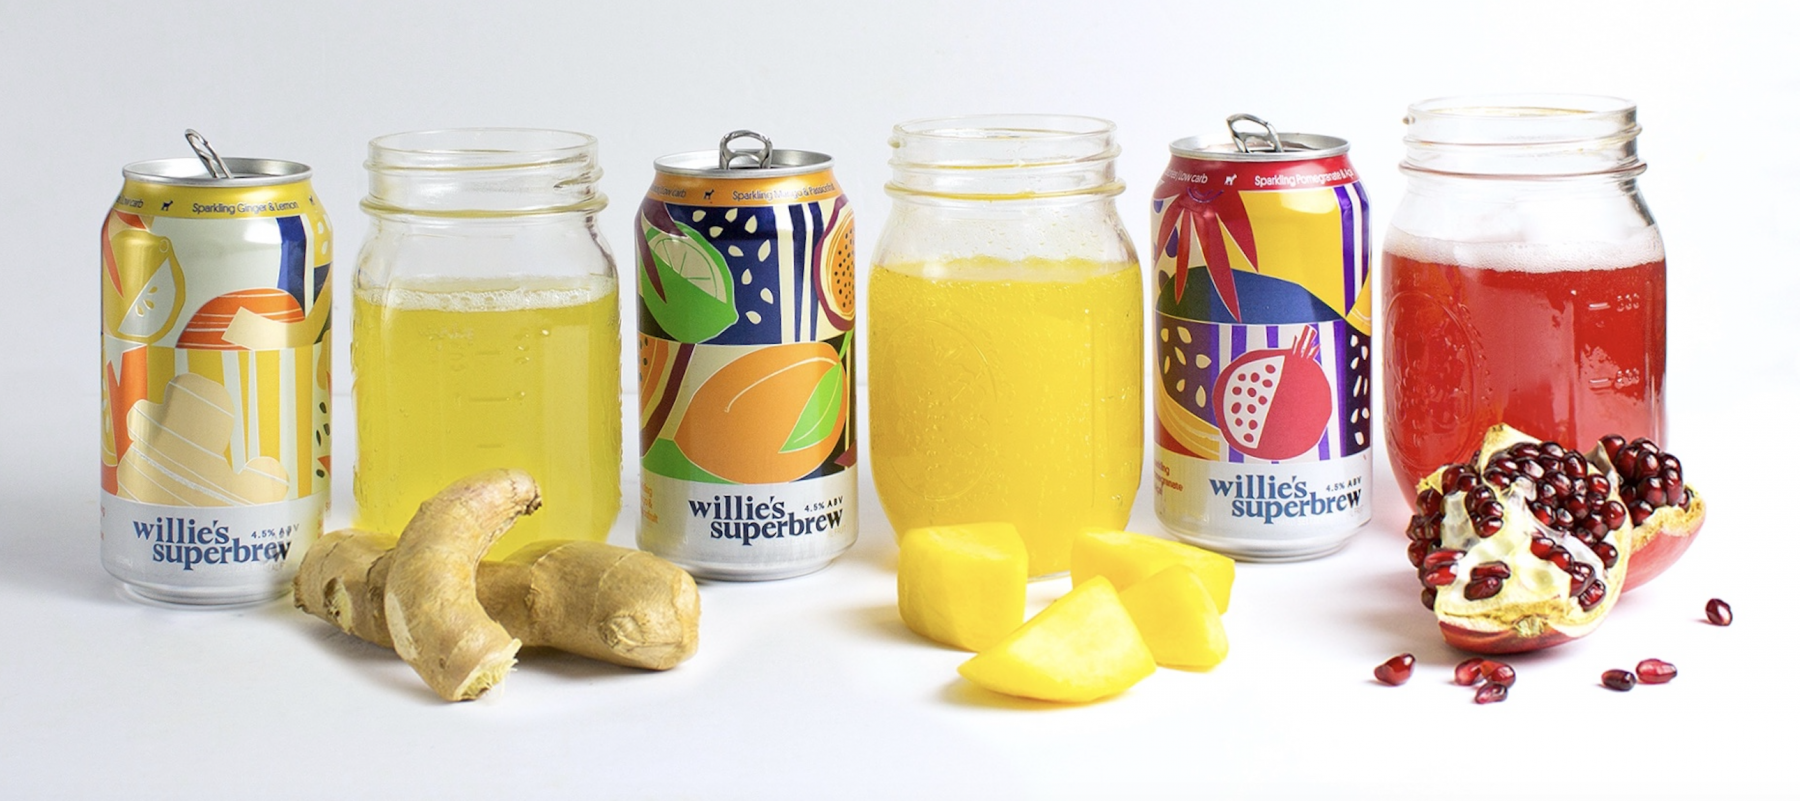 Willie's Superbrew is Our Drink of the Summer